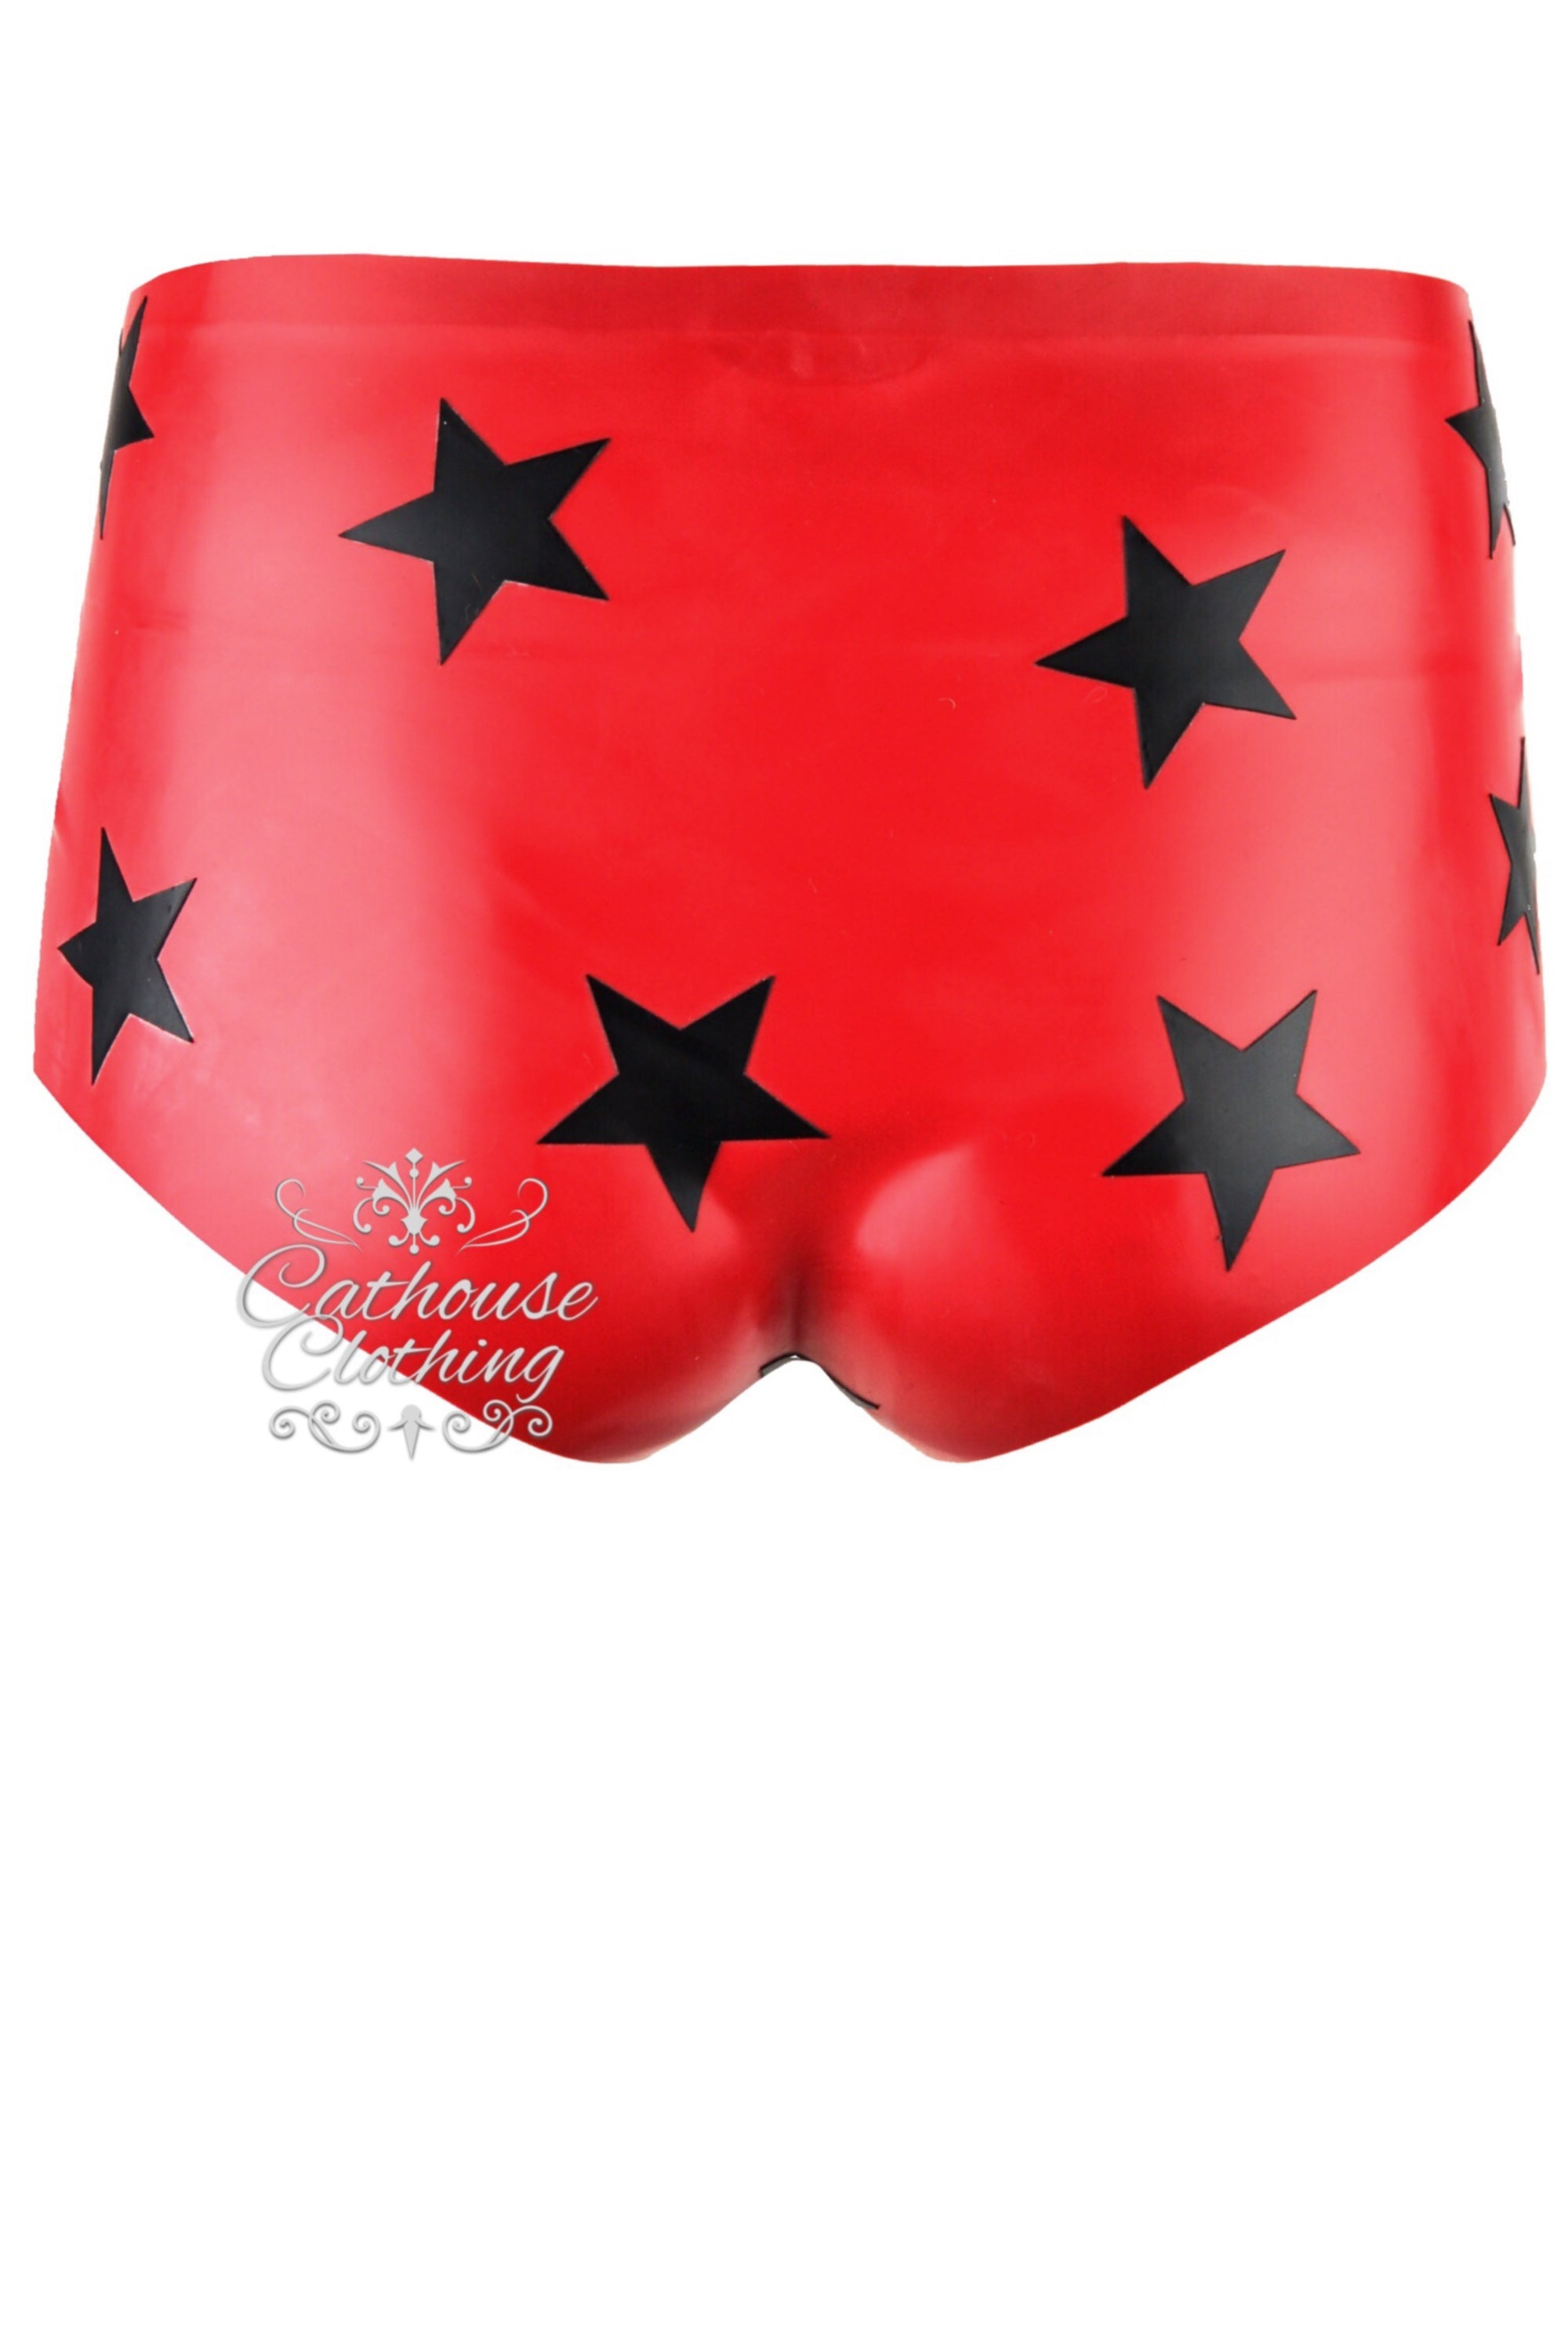 Latex star hotpants